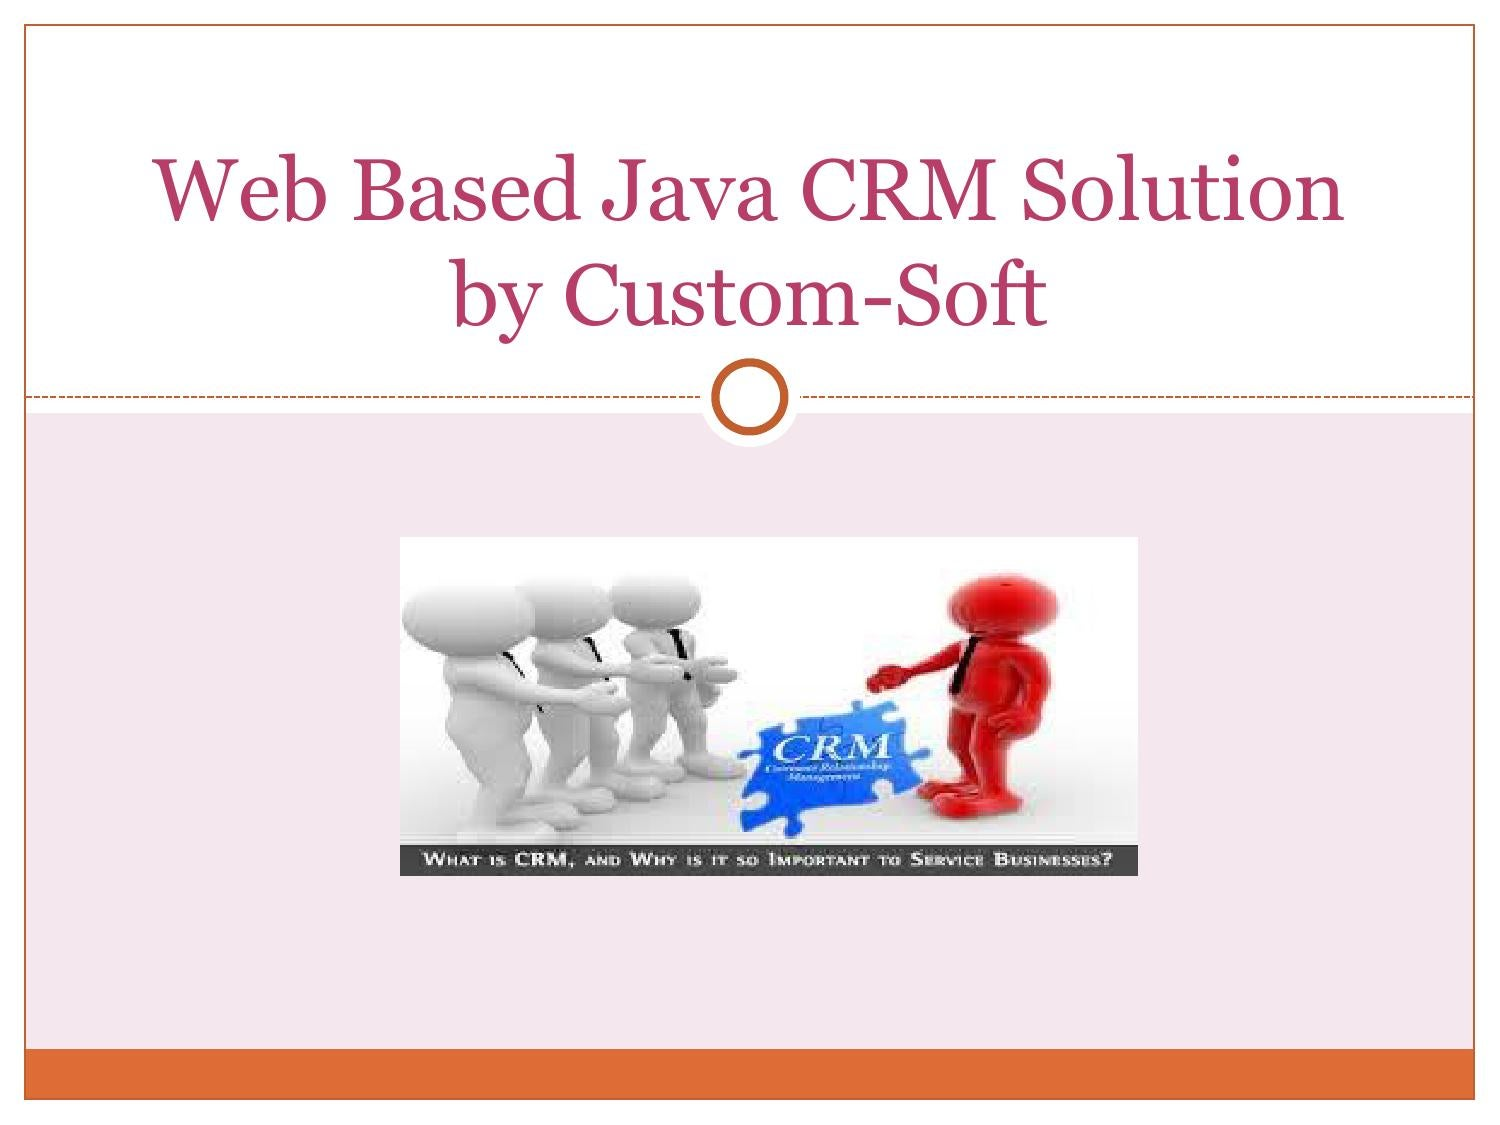 Web based java crm solution by custom soft ppt by Custom